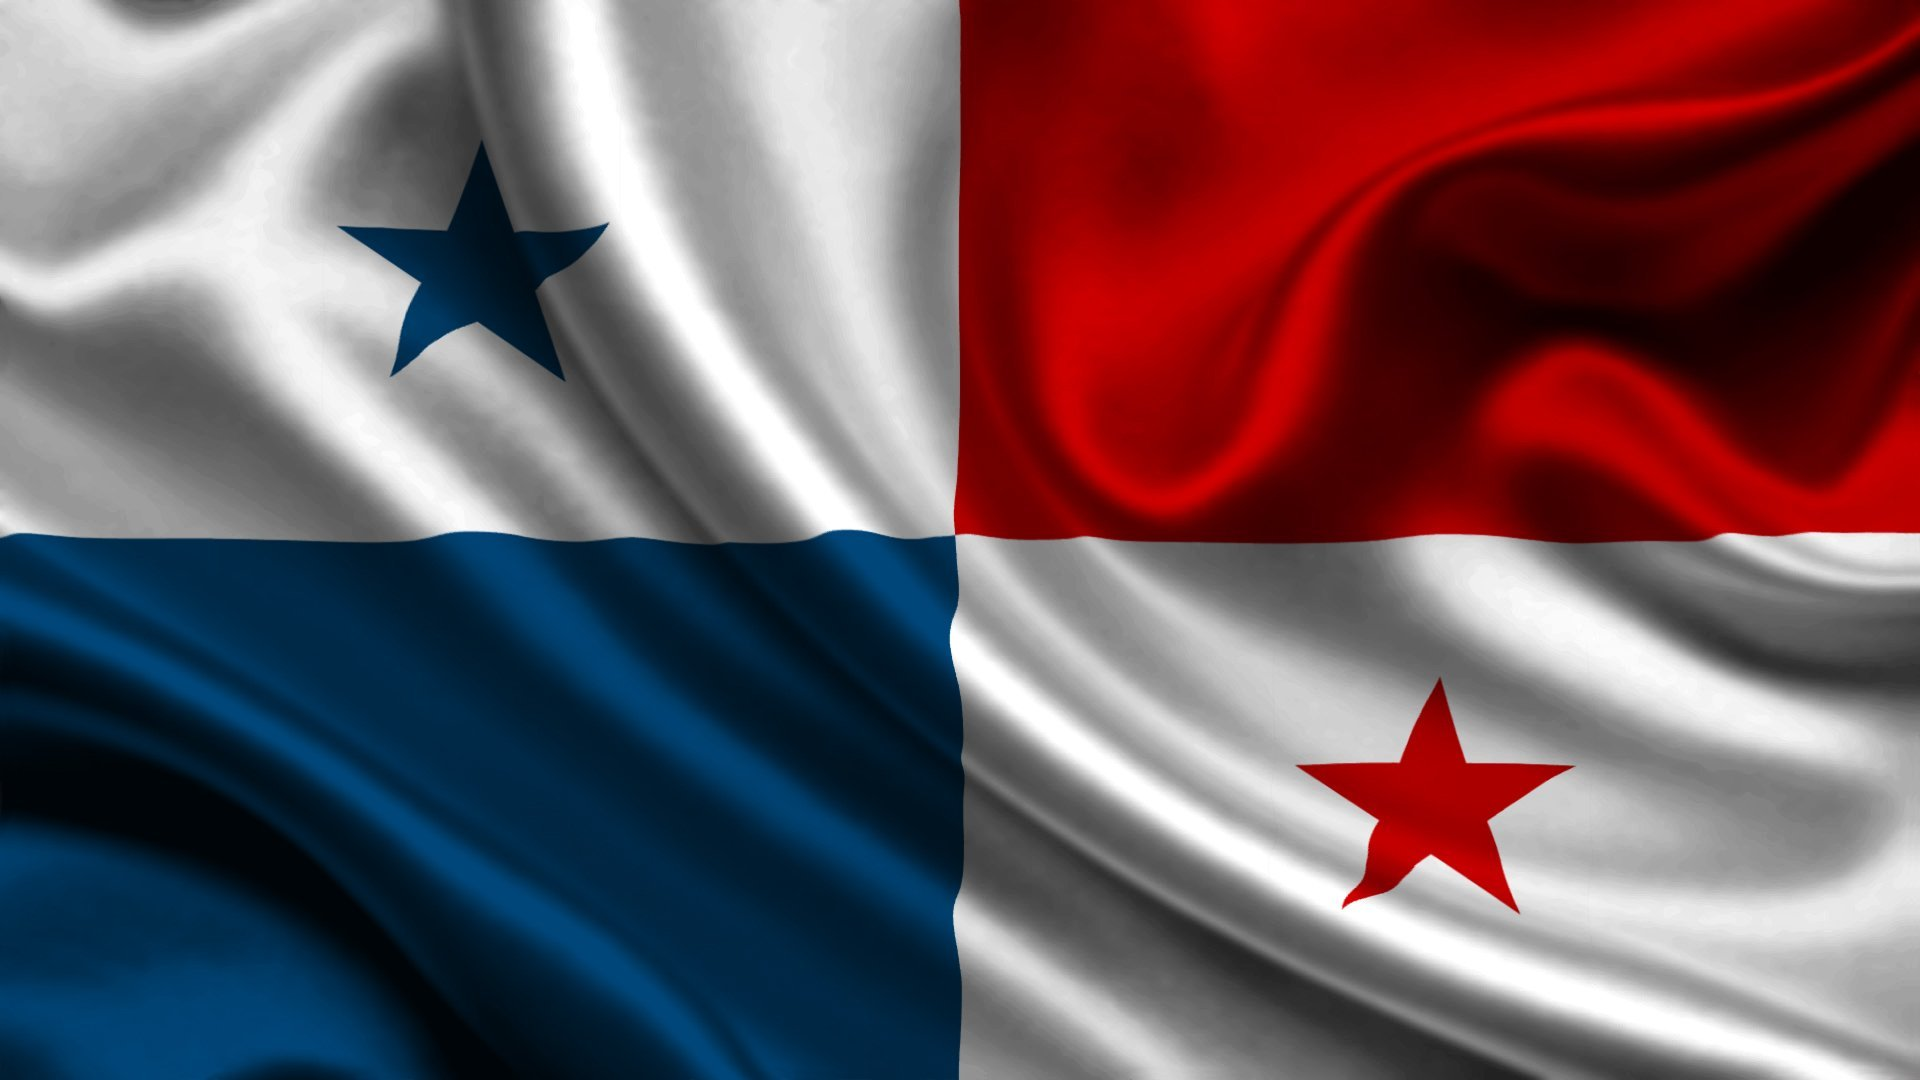 Panama Flag hd Images & Wallpapers free download